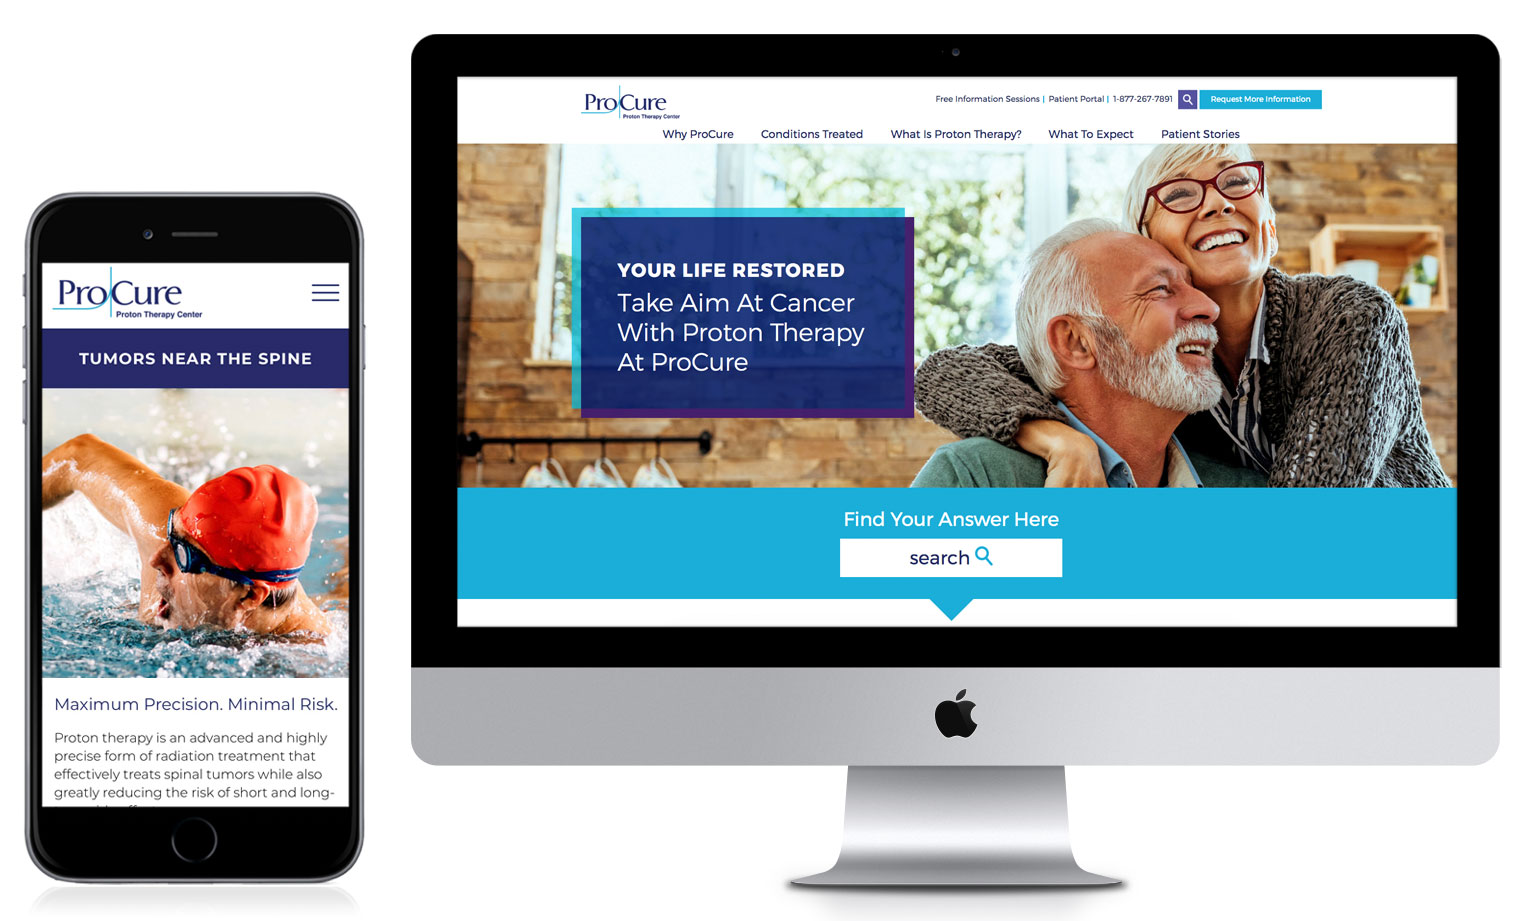 Desktop And Mobile Interfaces Showing Redesigned ProCure Website